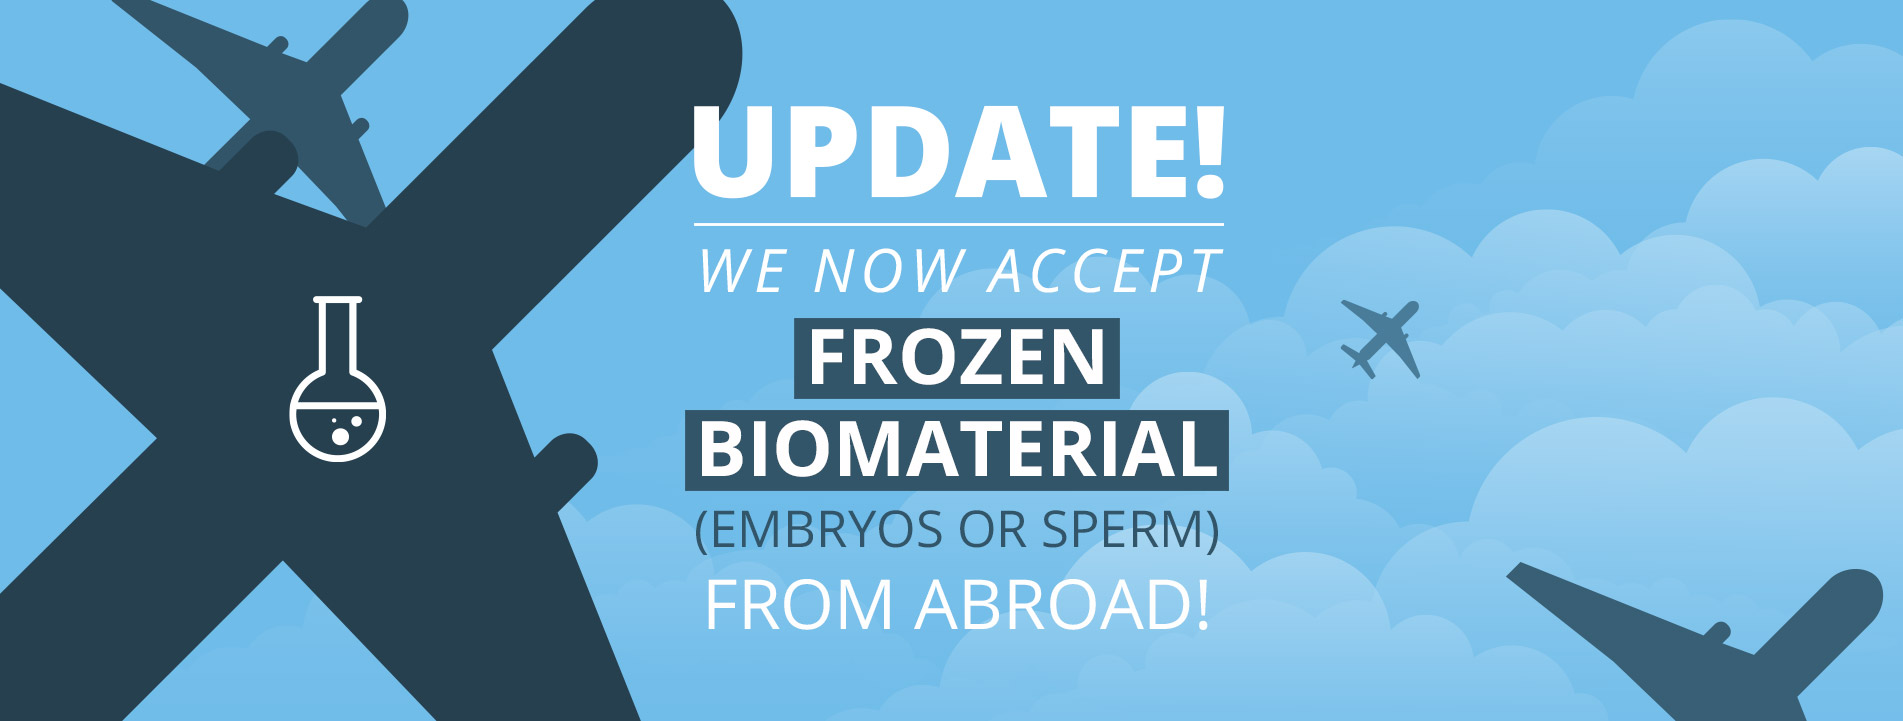 We now accept frozen biomaterial from abroad!